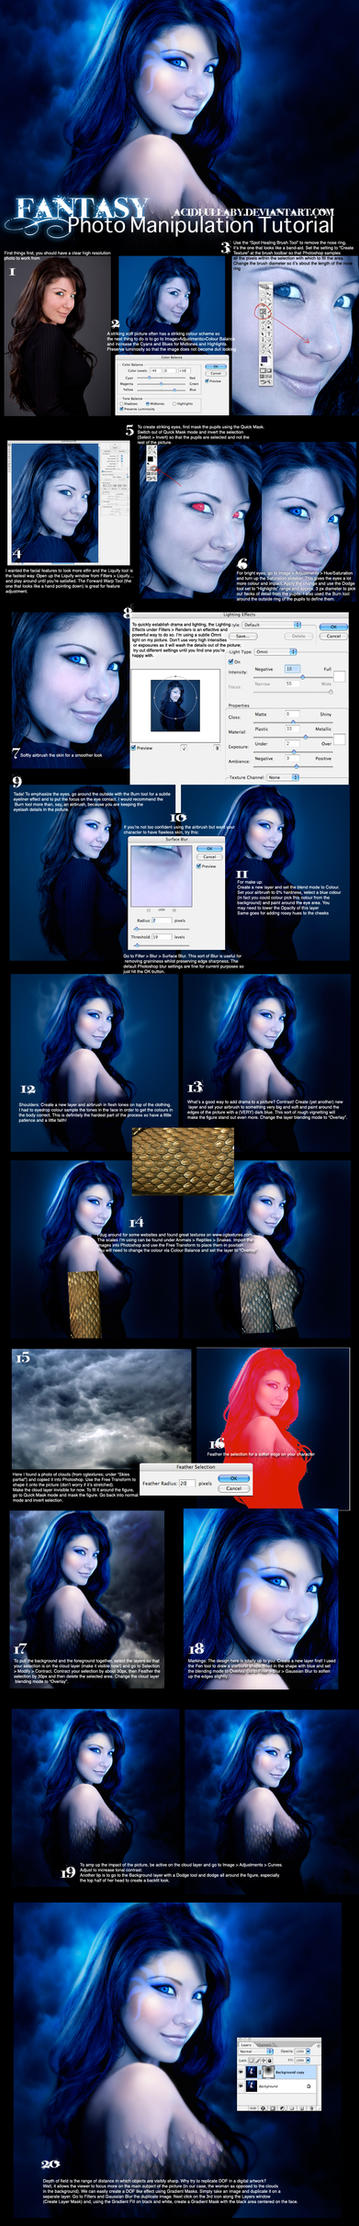 Fantasy photoshop tutorial by acidlullaby on deviantart fantasy photoshop tutorial by acidlullaby baditri Choice Image